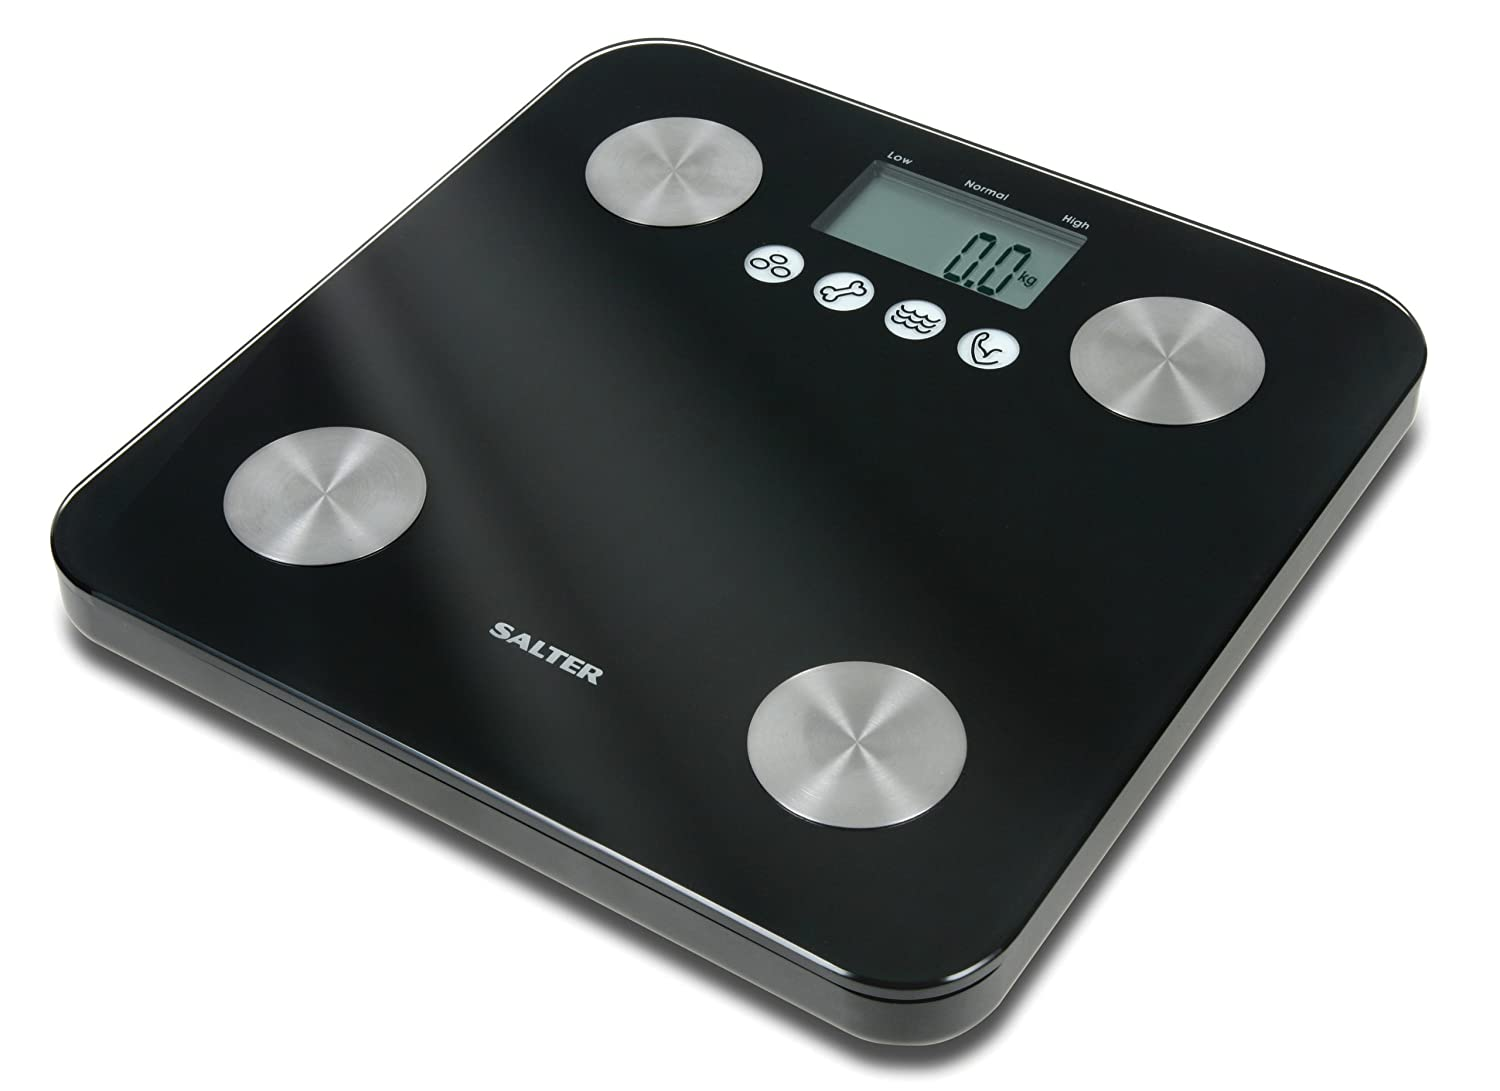 Salter 9106 Electronic Glass Body Analyser Scale